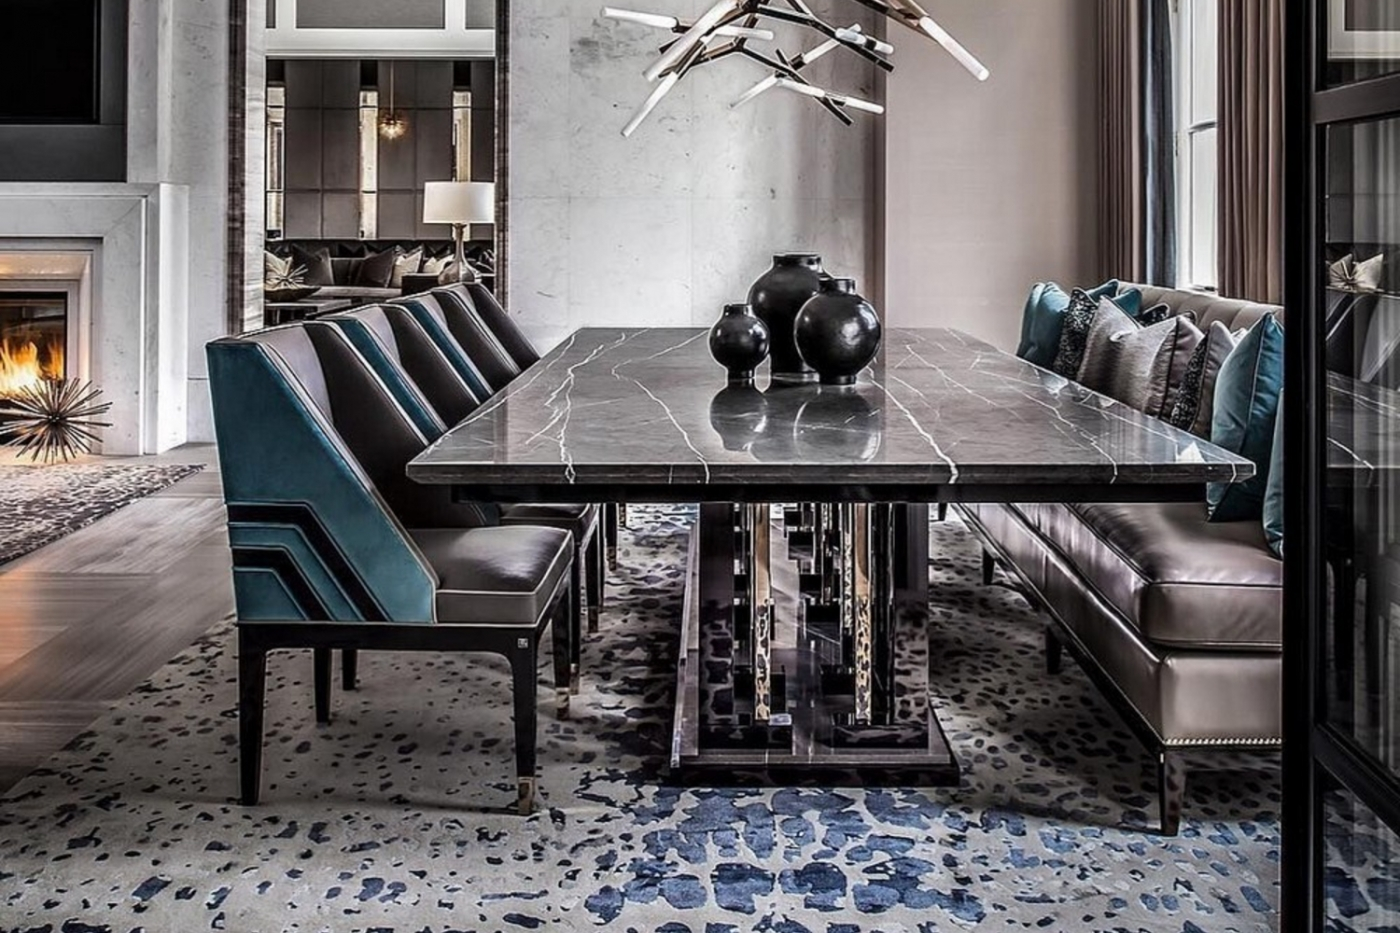 ferris rafauli Magnificient Dining Rooms By Ferris Rafauli: Get The Look Magnificient Dining Rooms By Ferris Rafauli Get The Look feature 1400x933